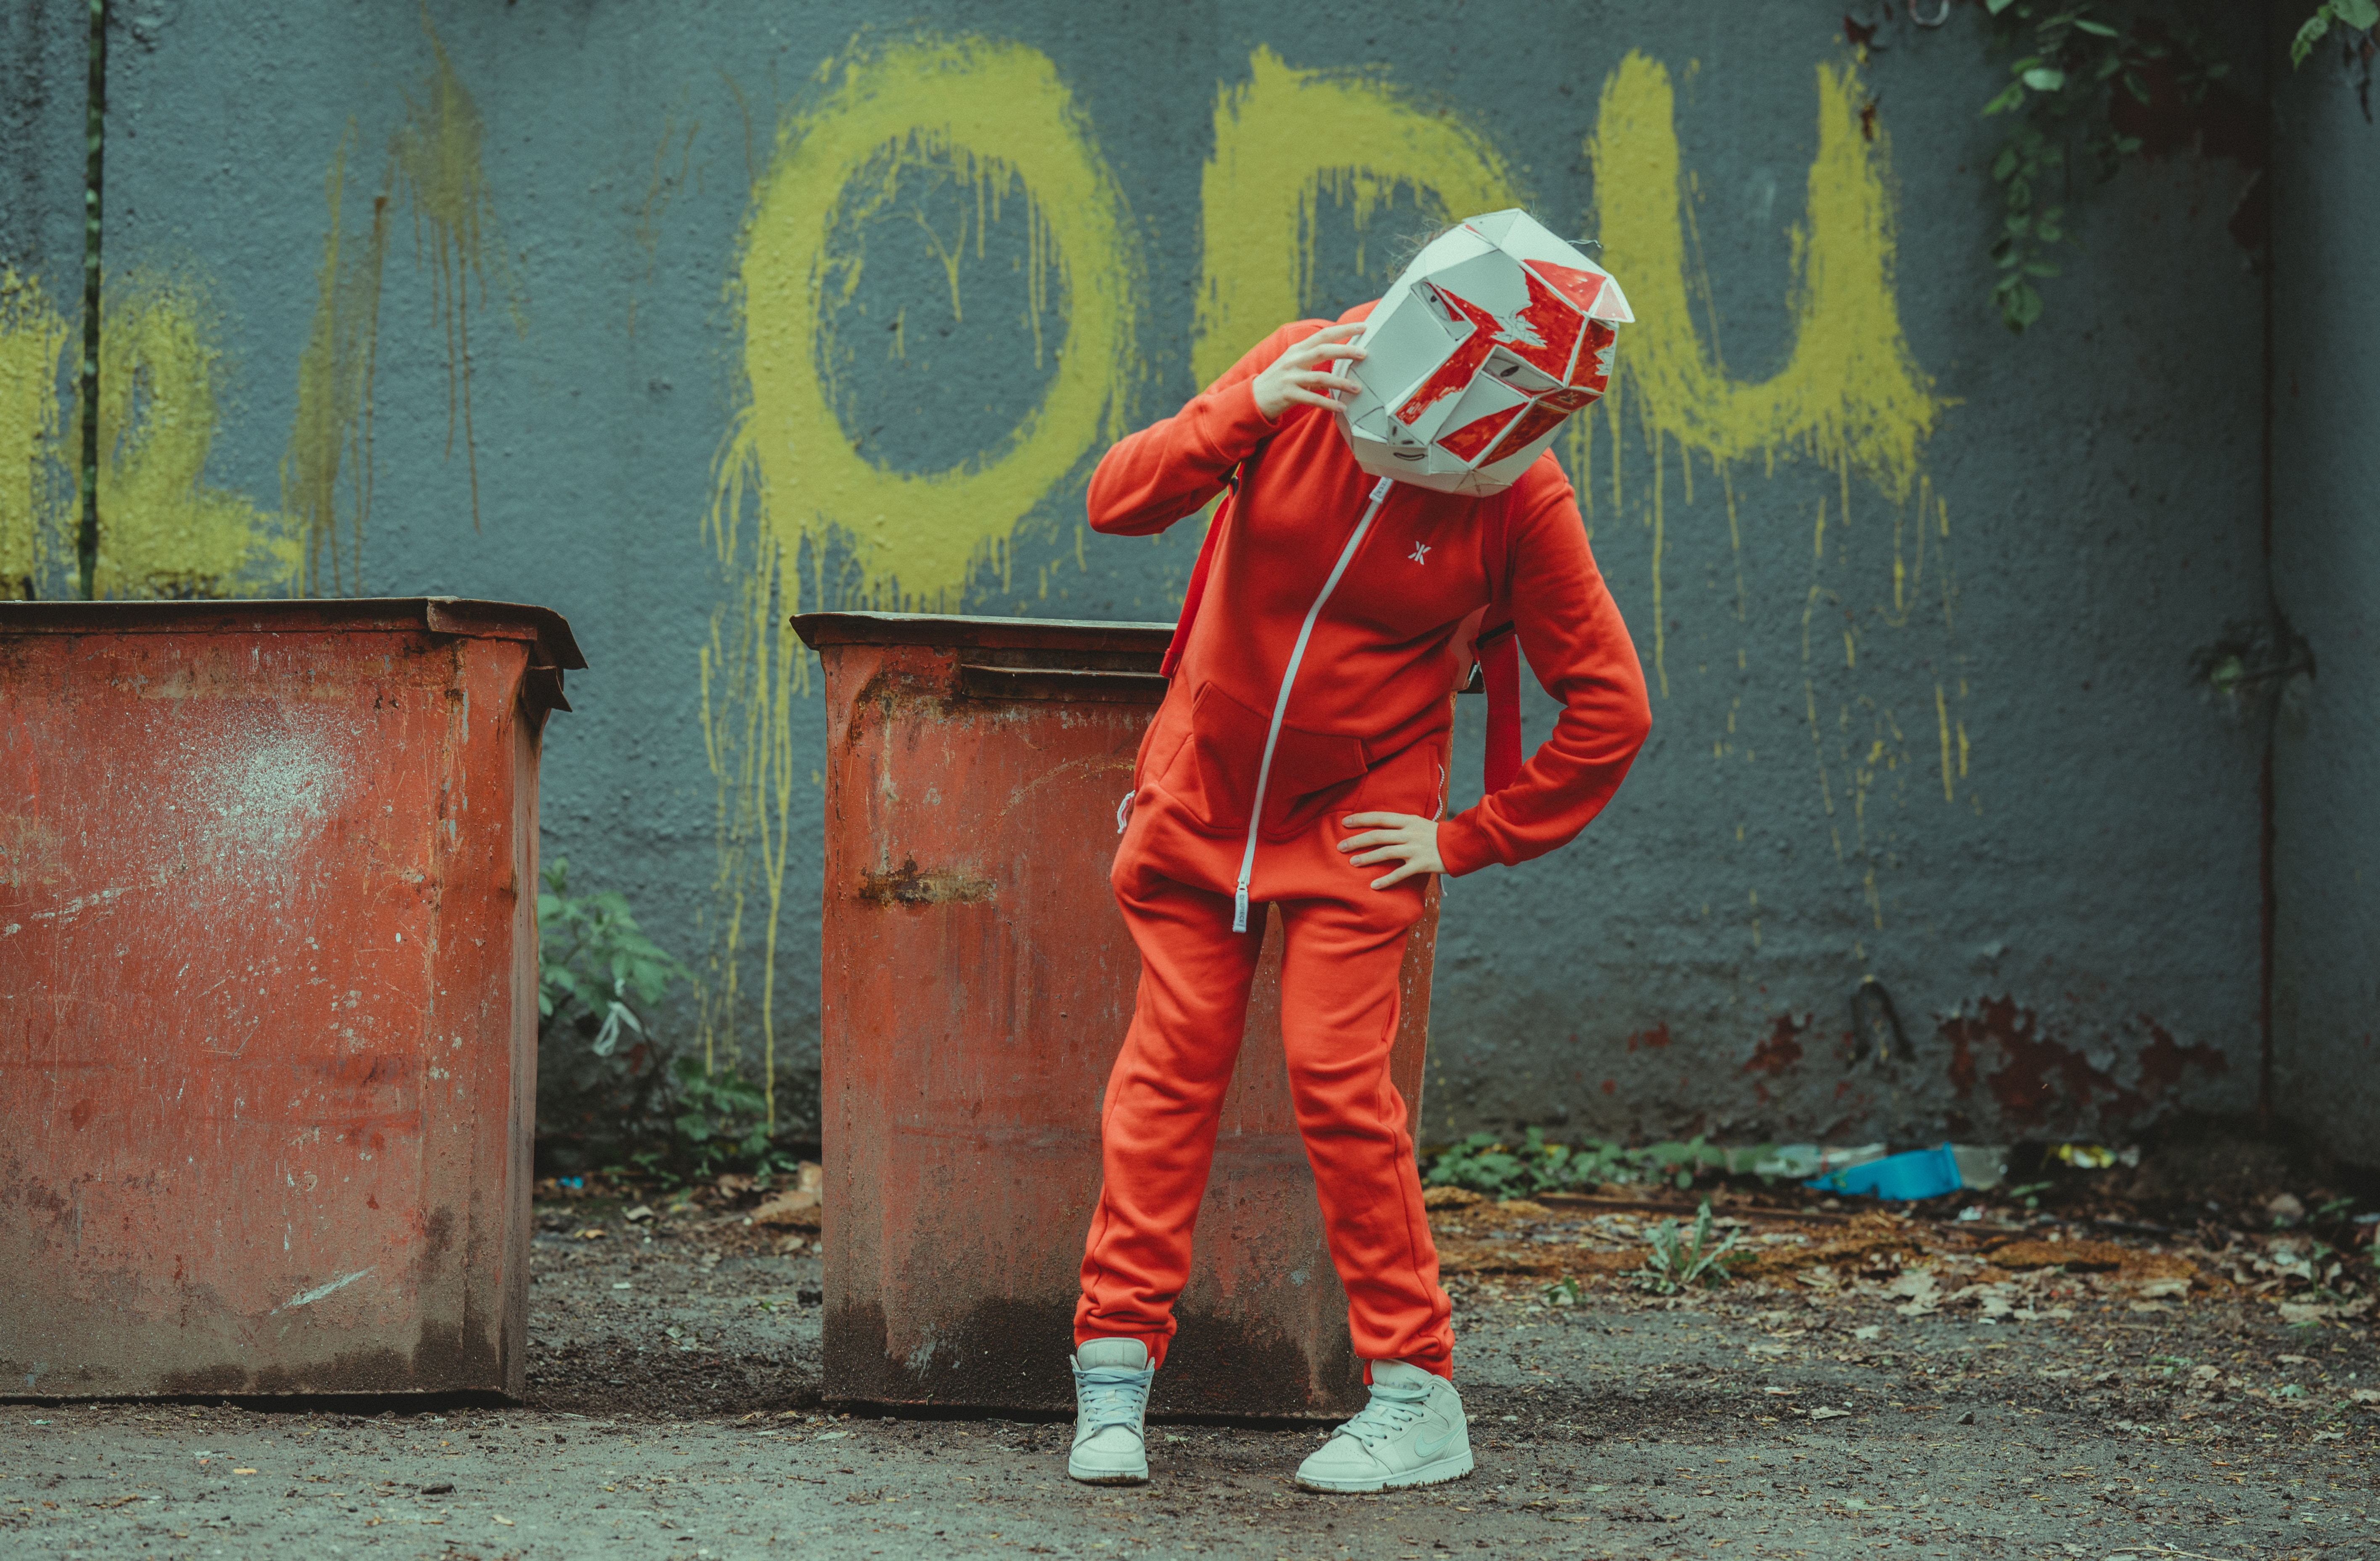 155331 download wallpaper Miscellanea, Miscellaneous, Human, Person, Mask, Helmet, Box screensavers and pictures for free